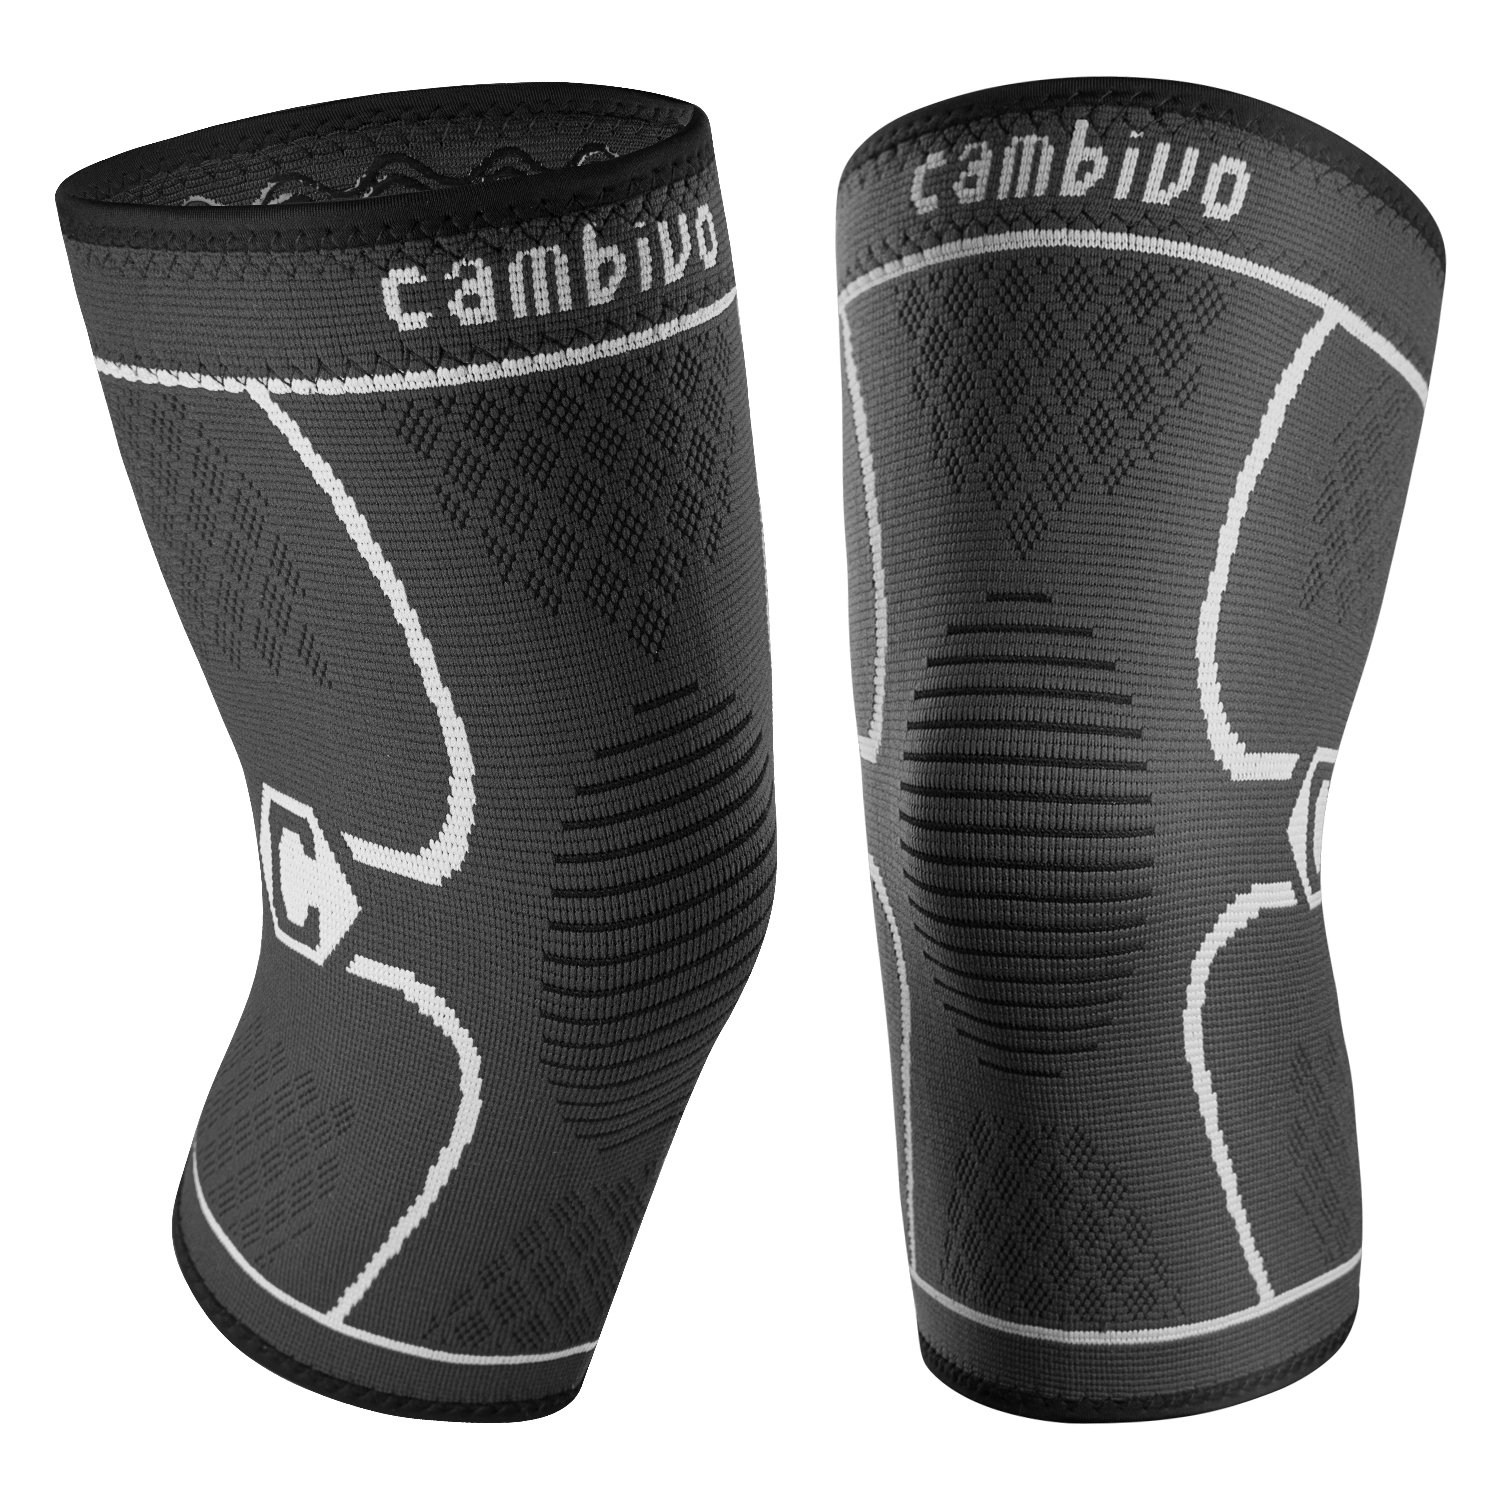 Cambivo 2 Pack Knee Brace, Knee Compression Sleeve Support for Running, Arthritis, ACL, Meniscus Tear, Sports, Joint Pain Relief and Injury Recovery (Large, Black/Gray) by CAMBIVO (Image #1)